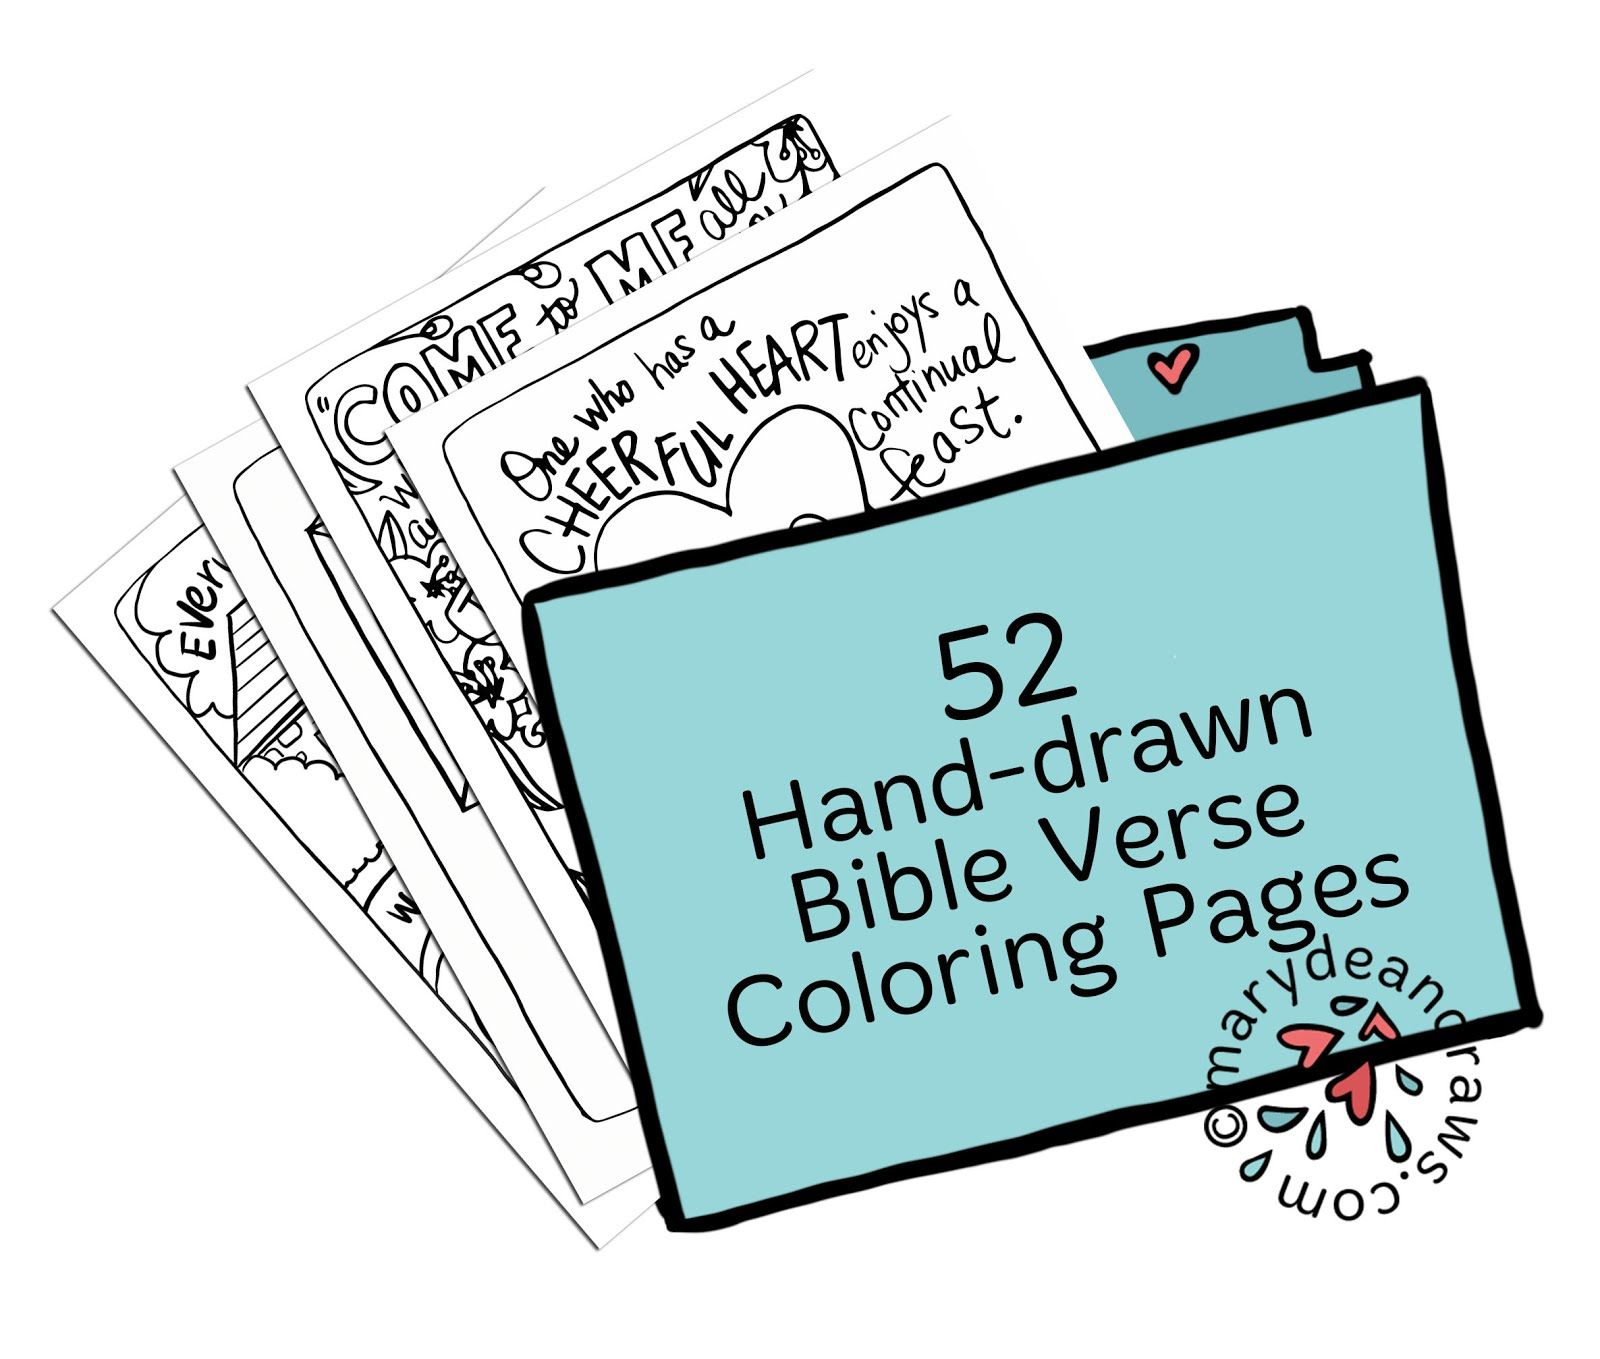 Hand-drawn Bible Verse Coloring Pages Collection from the Marydean ...